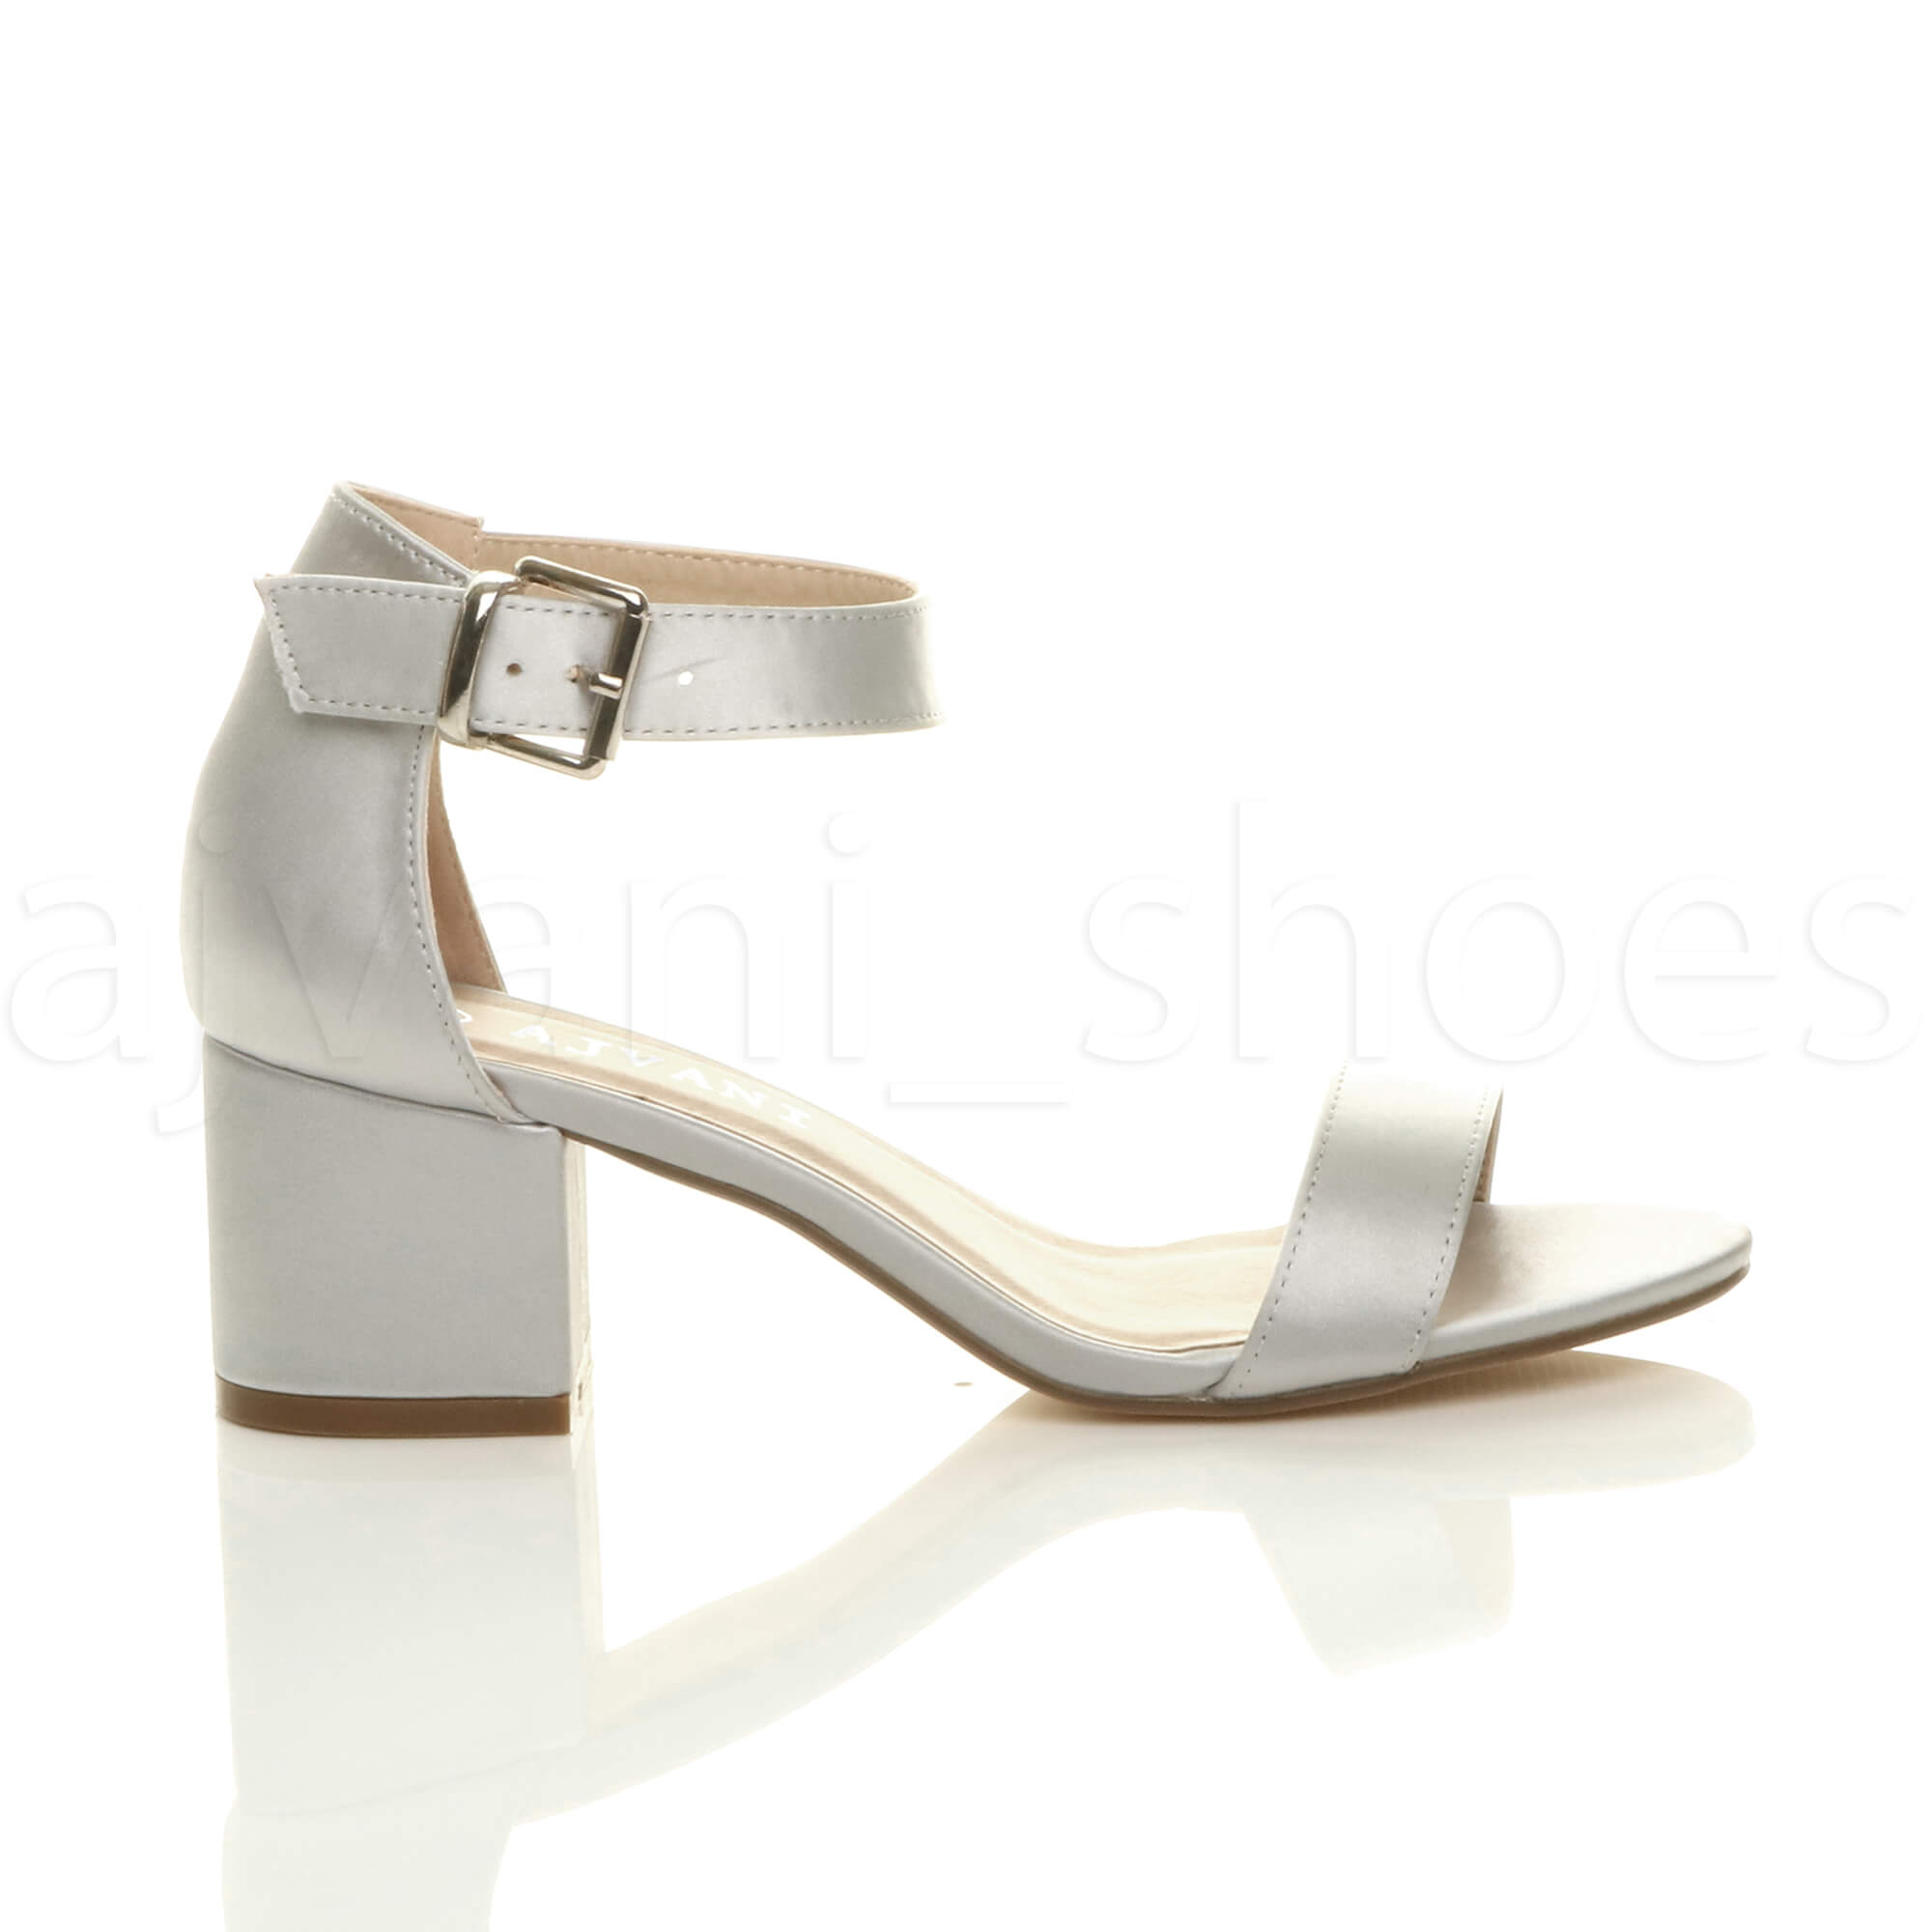 WOMENS-LADIES-LOW-MID-BLOCK-HEEL-ANKLE-STRAP-BUCKLE-PARTY-STRAPPY-SANDALS-SIZE thumbnail 183